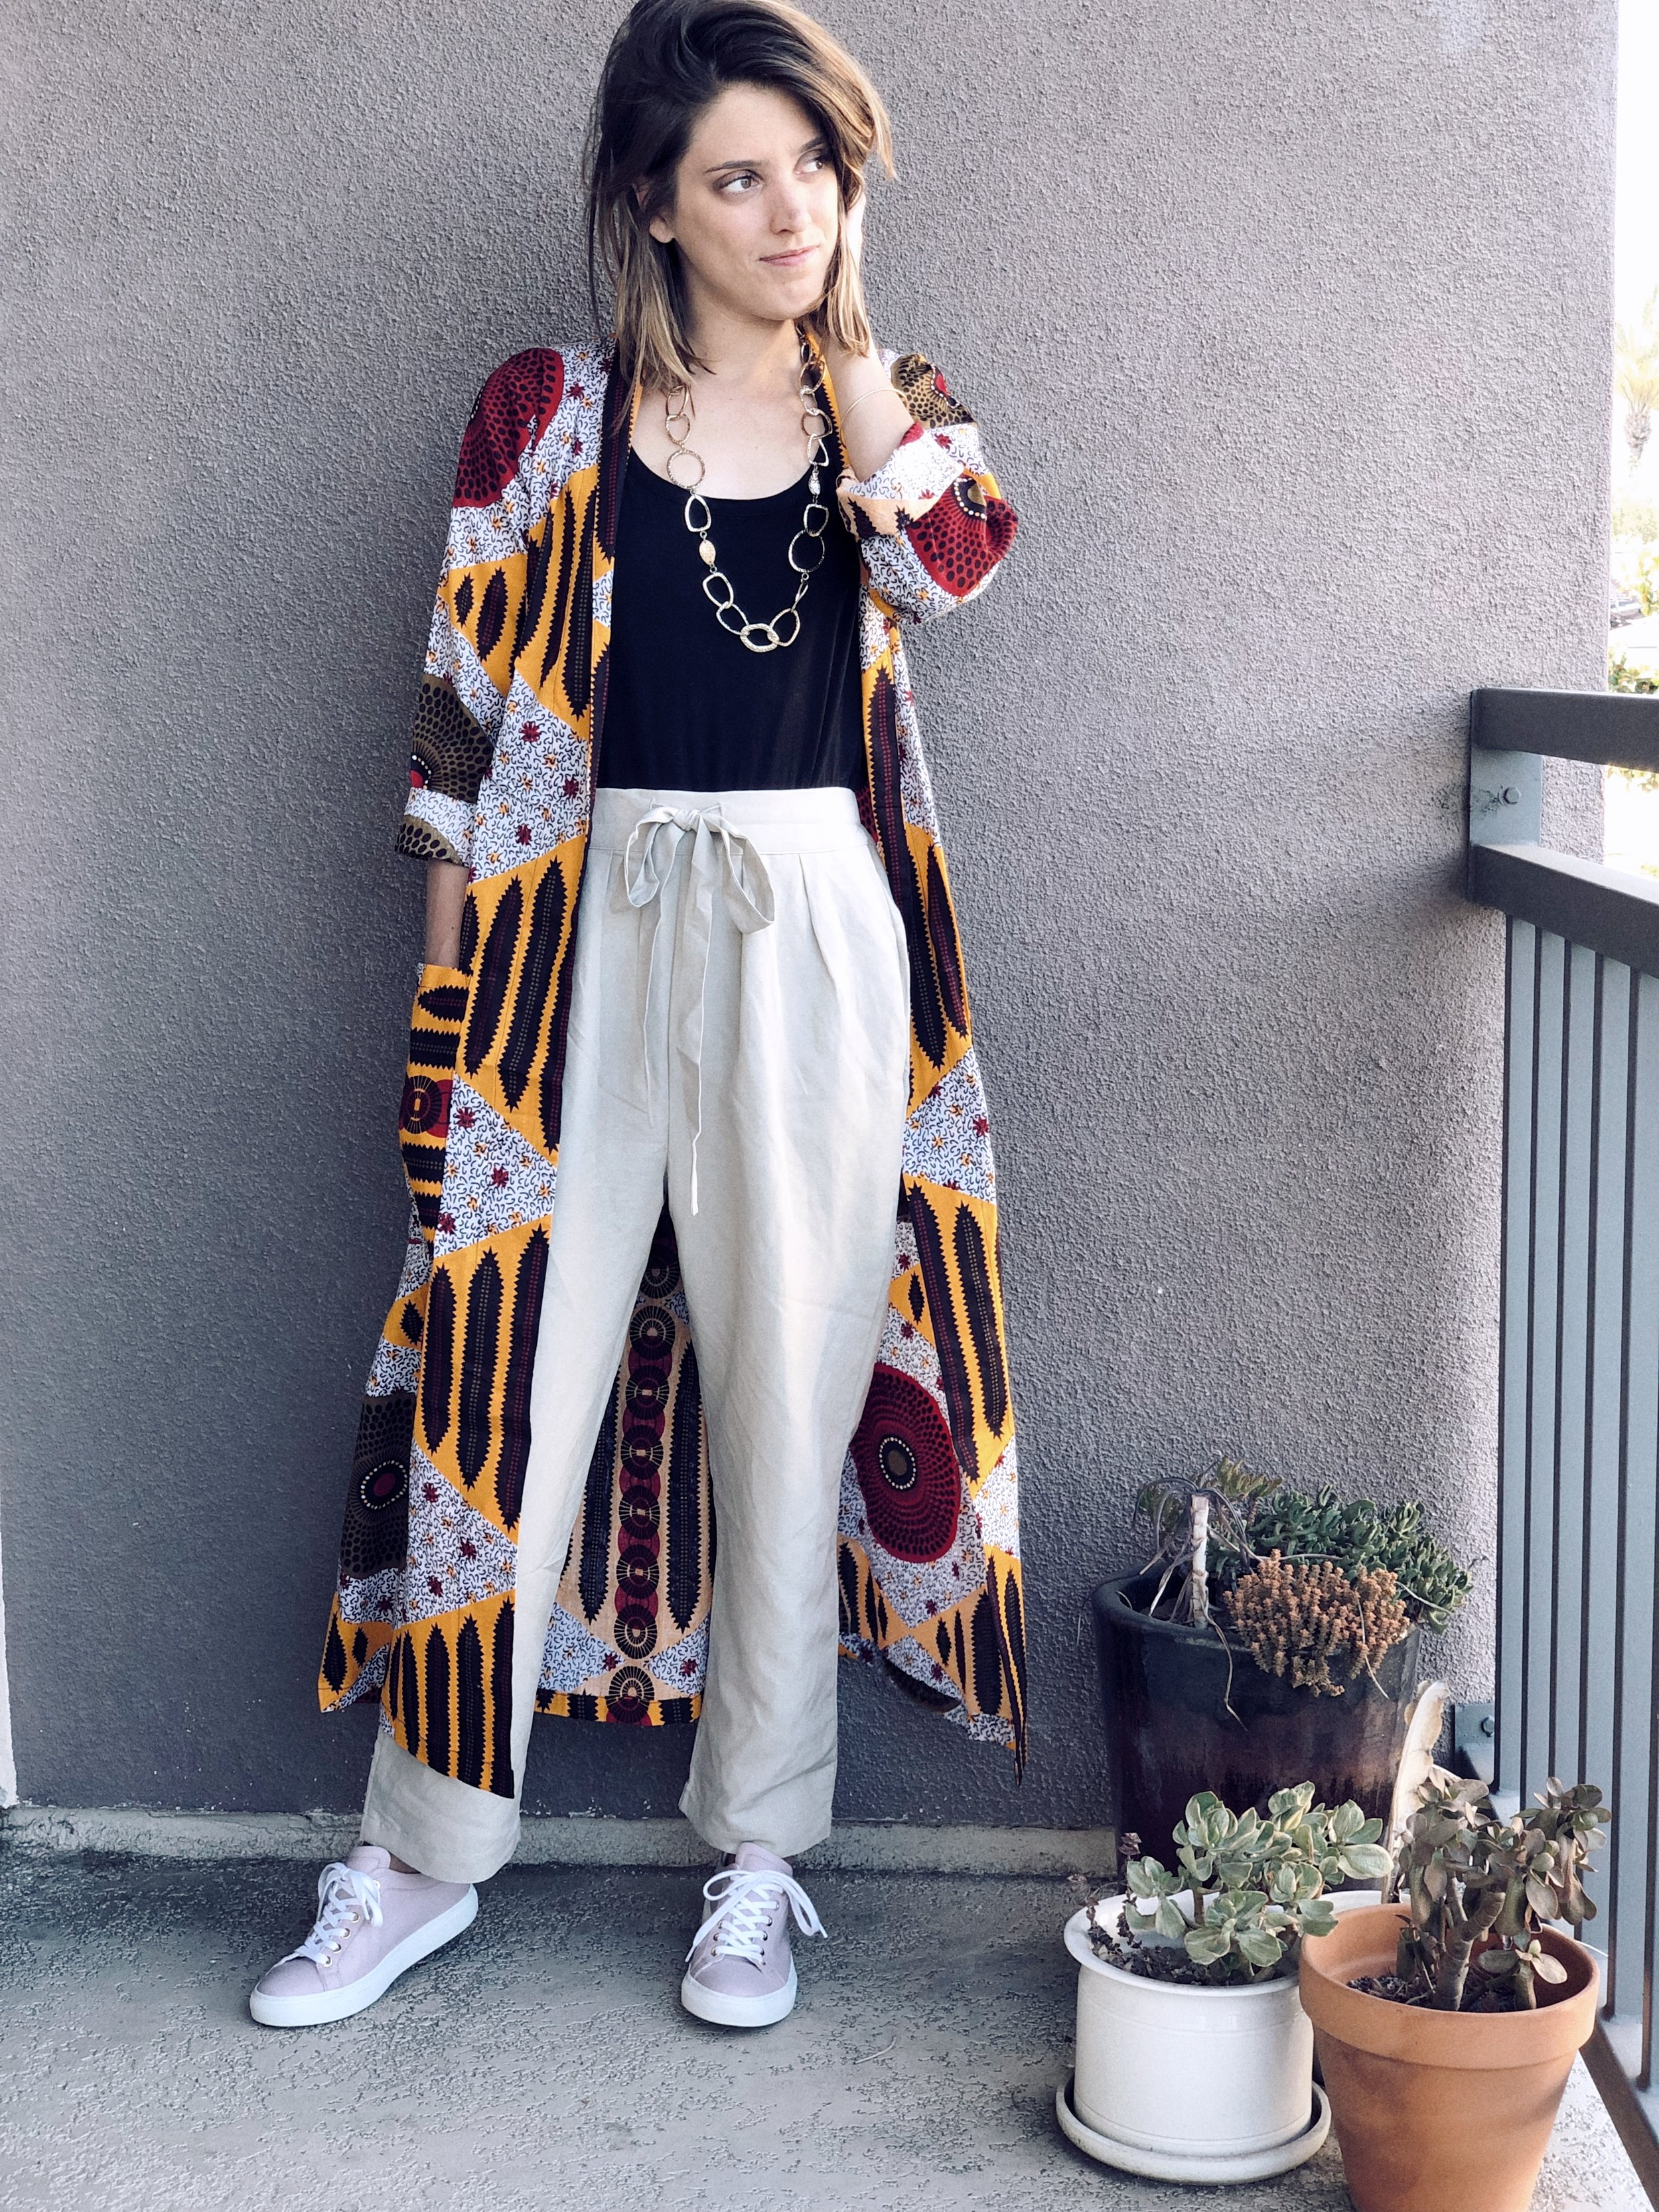 Tank- Cuyana; Pants- Ozma of California; Sneakers- M. Gemi; Robe- The Robe Lives; Necklace- oldie but goodie